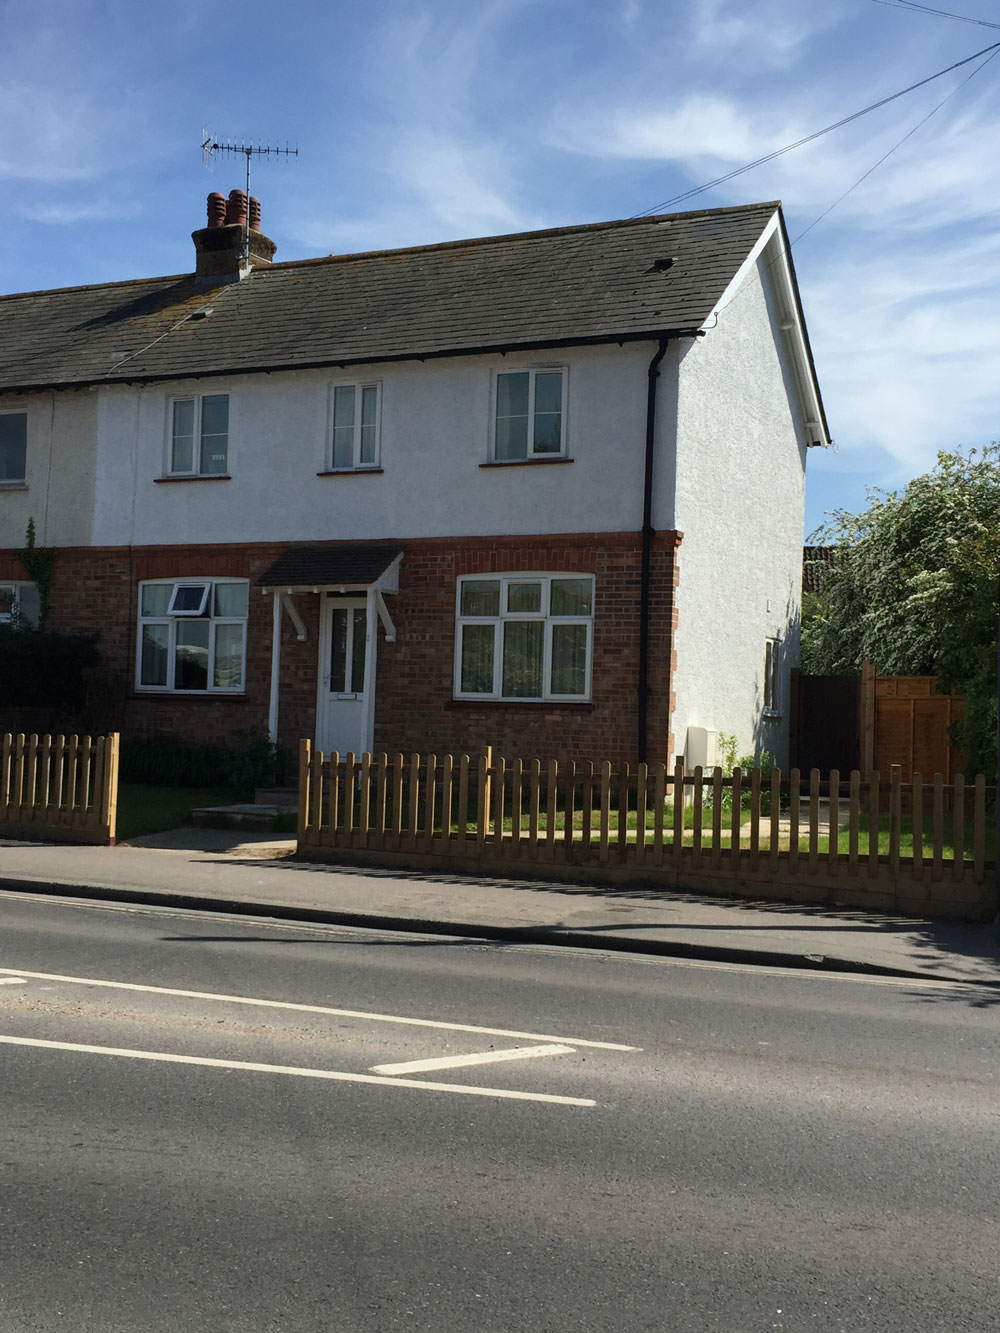 6 Bedroom House close to University Campus